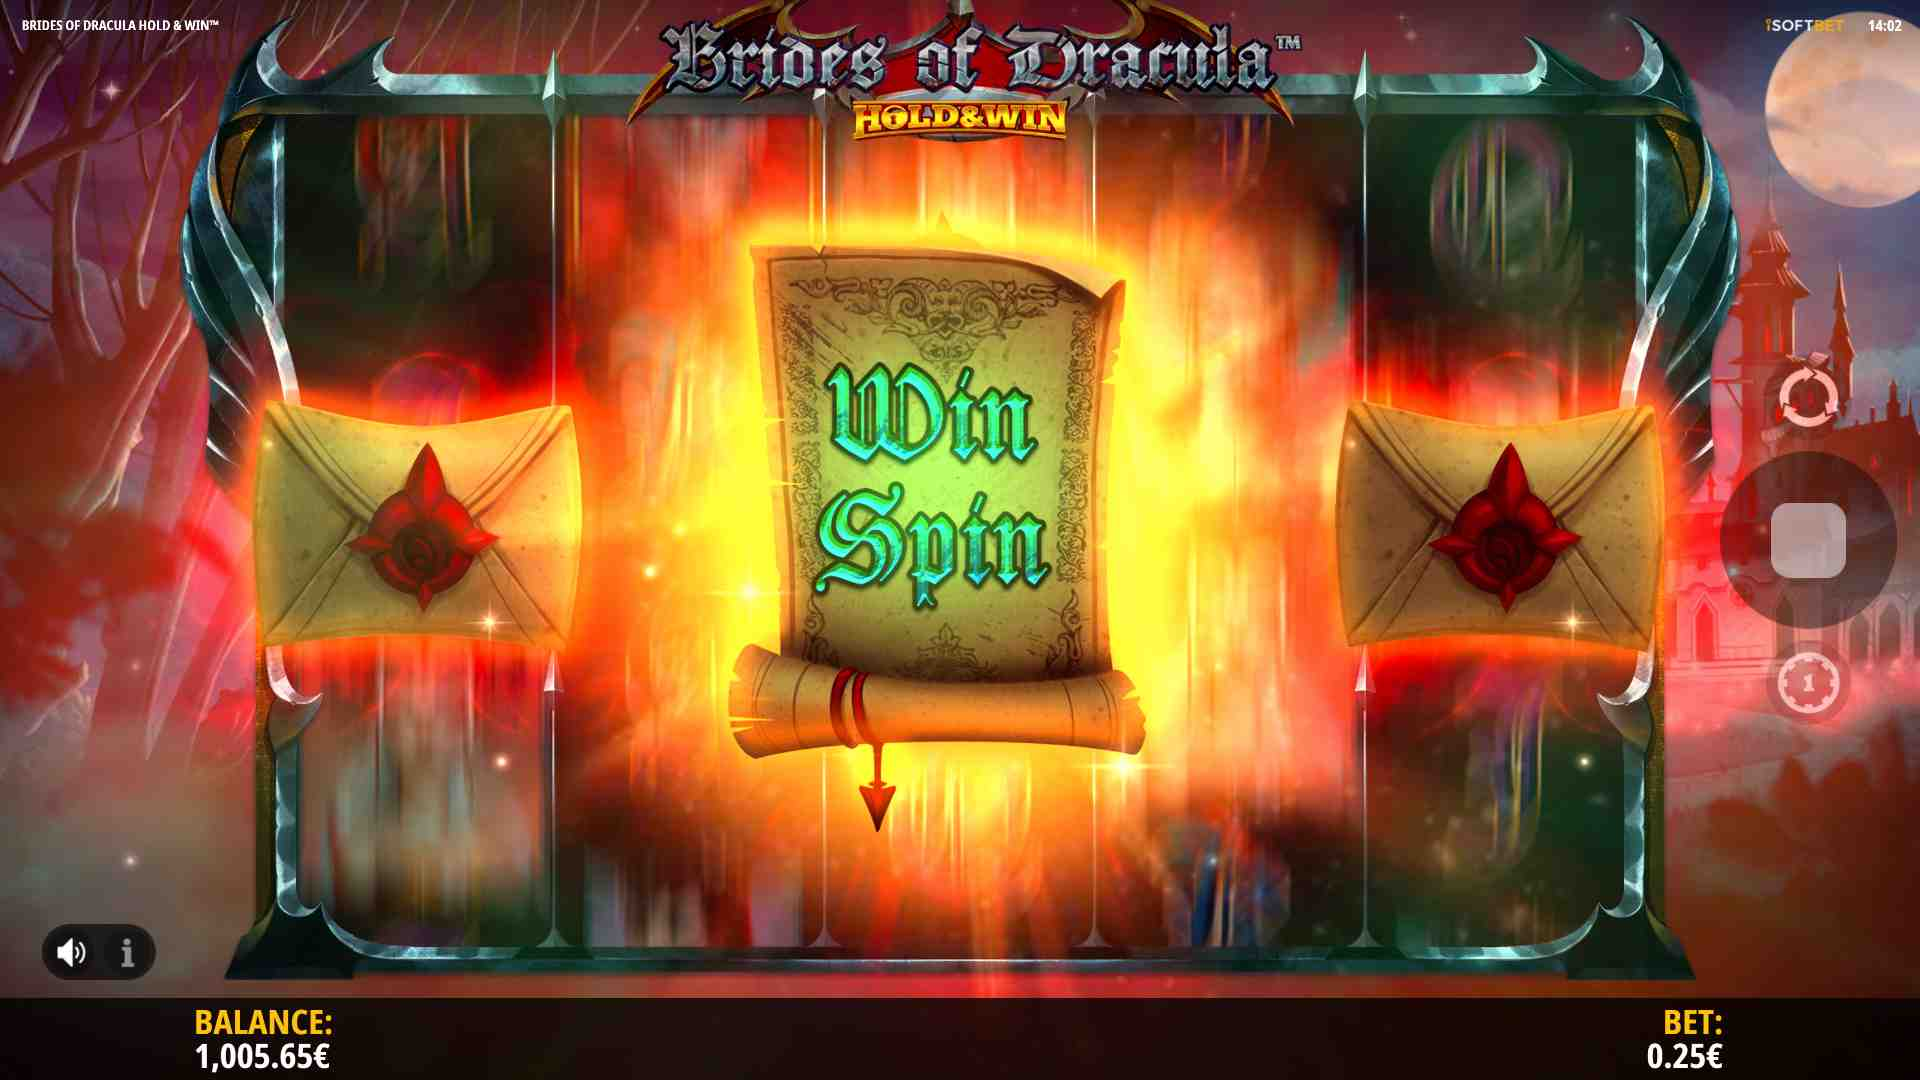 Brides of Dracula Hold & Win Pick a Letter Feature